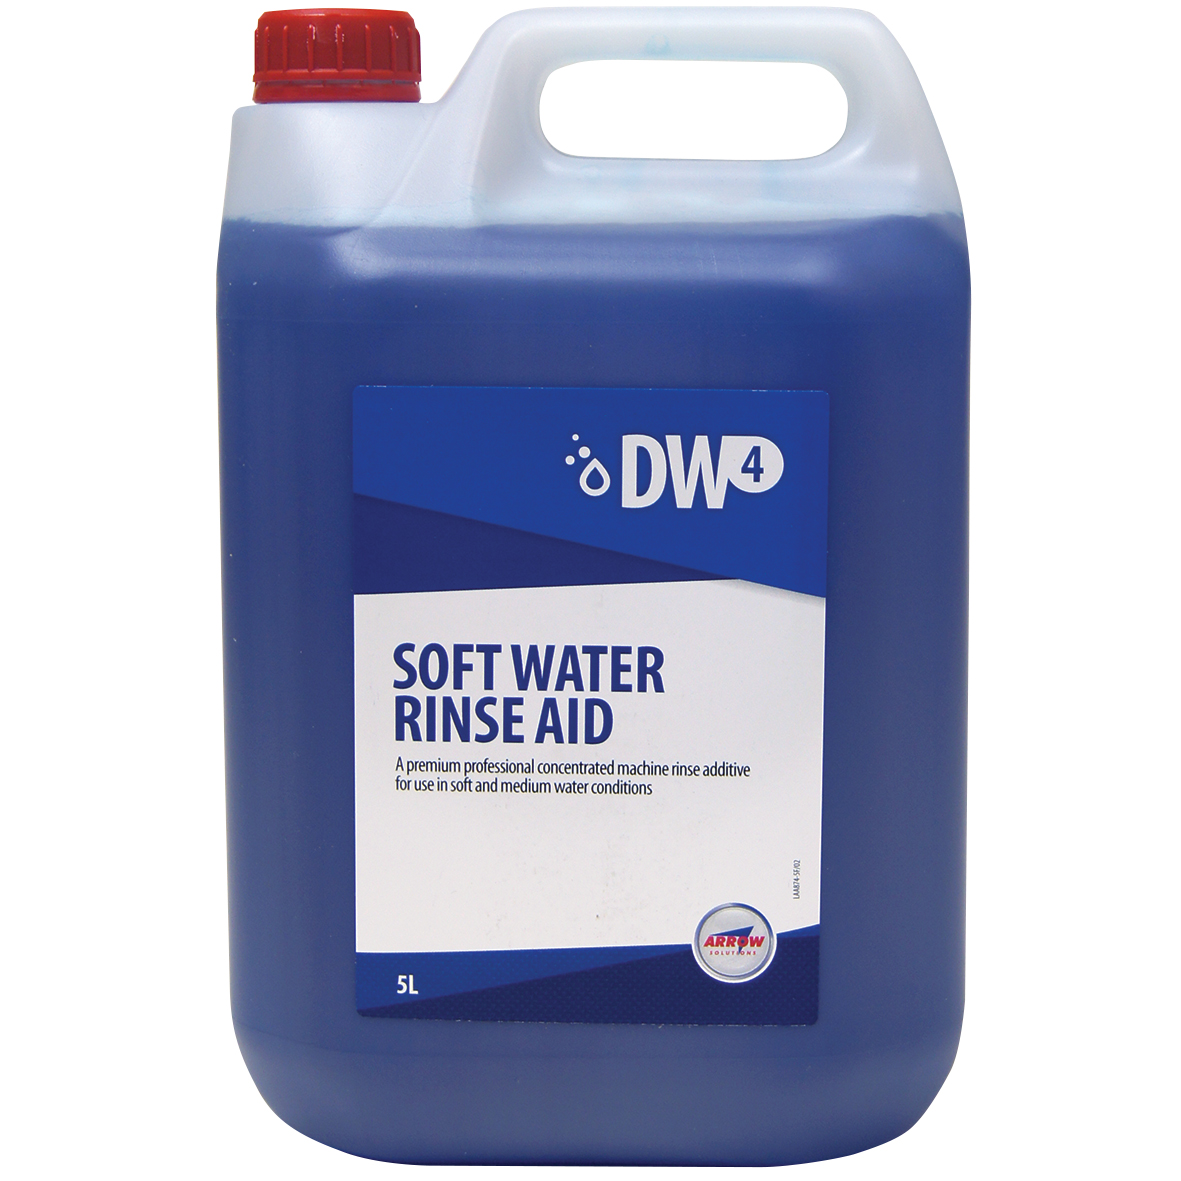 DW4 Soft Water Rinse Aid product image